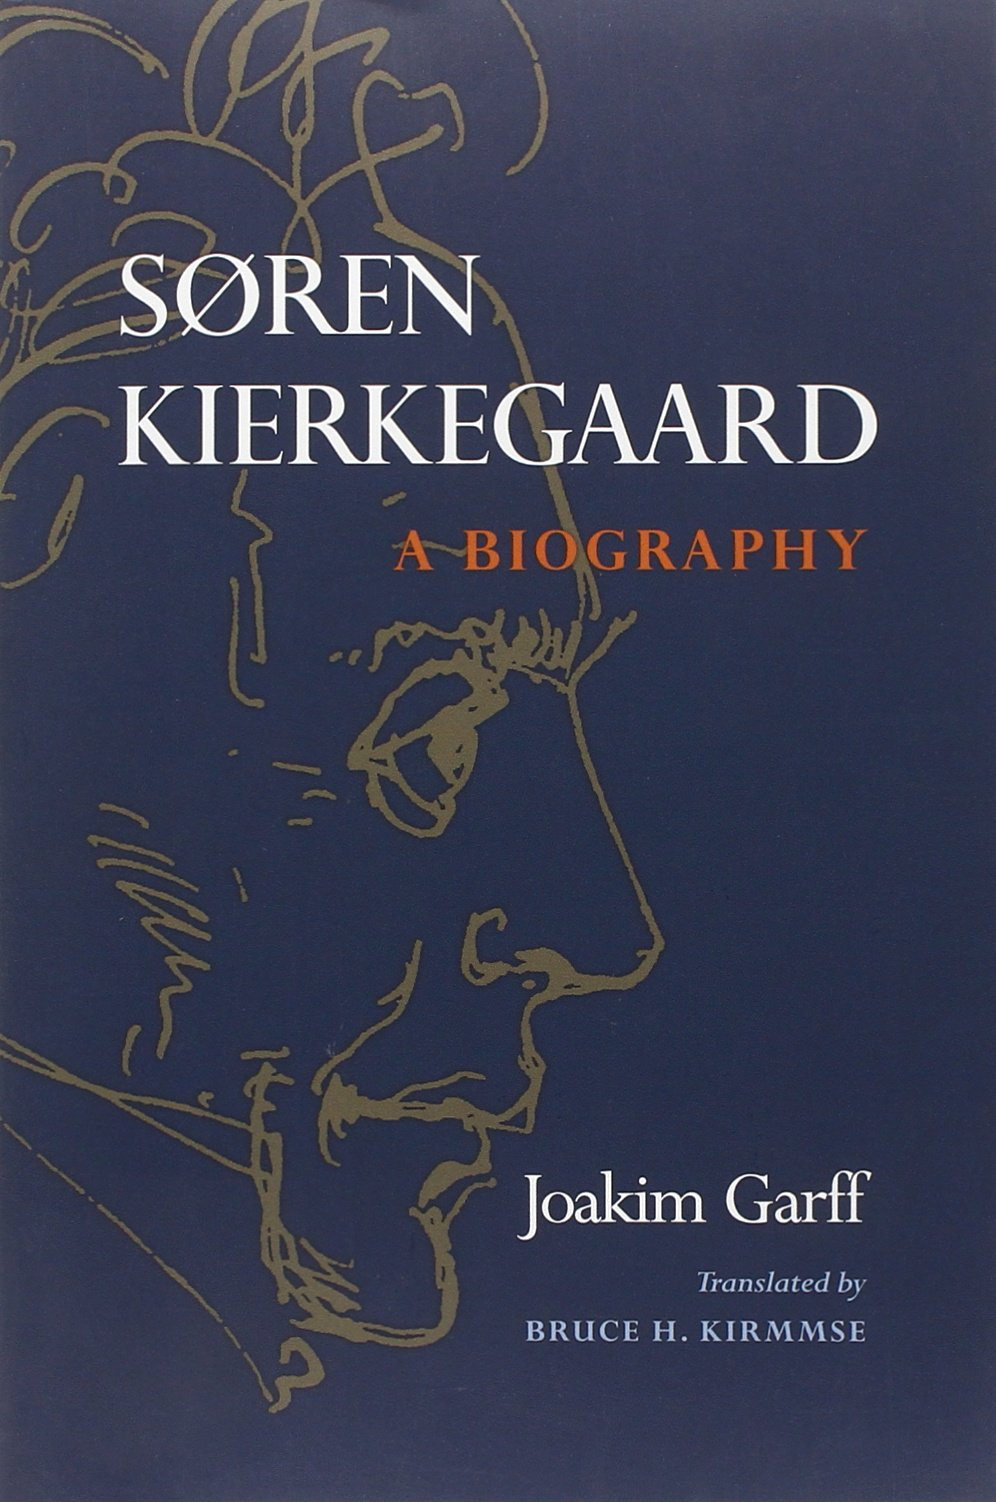 the life and works of soren aabye kierkegaard Soren kierkegaard by  yet written of the life and works of the enigmatic dane  garff's grand biography of soren aabye kierkegaard.